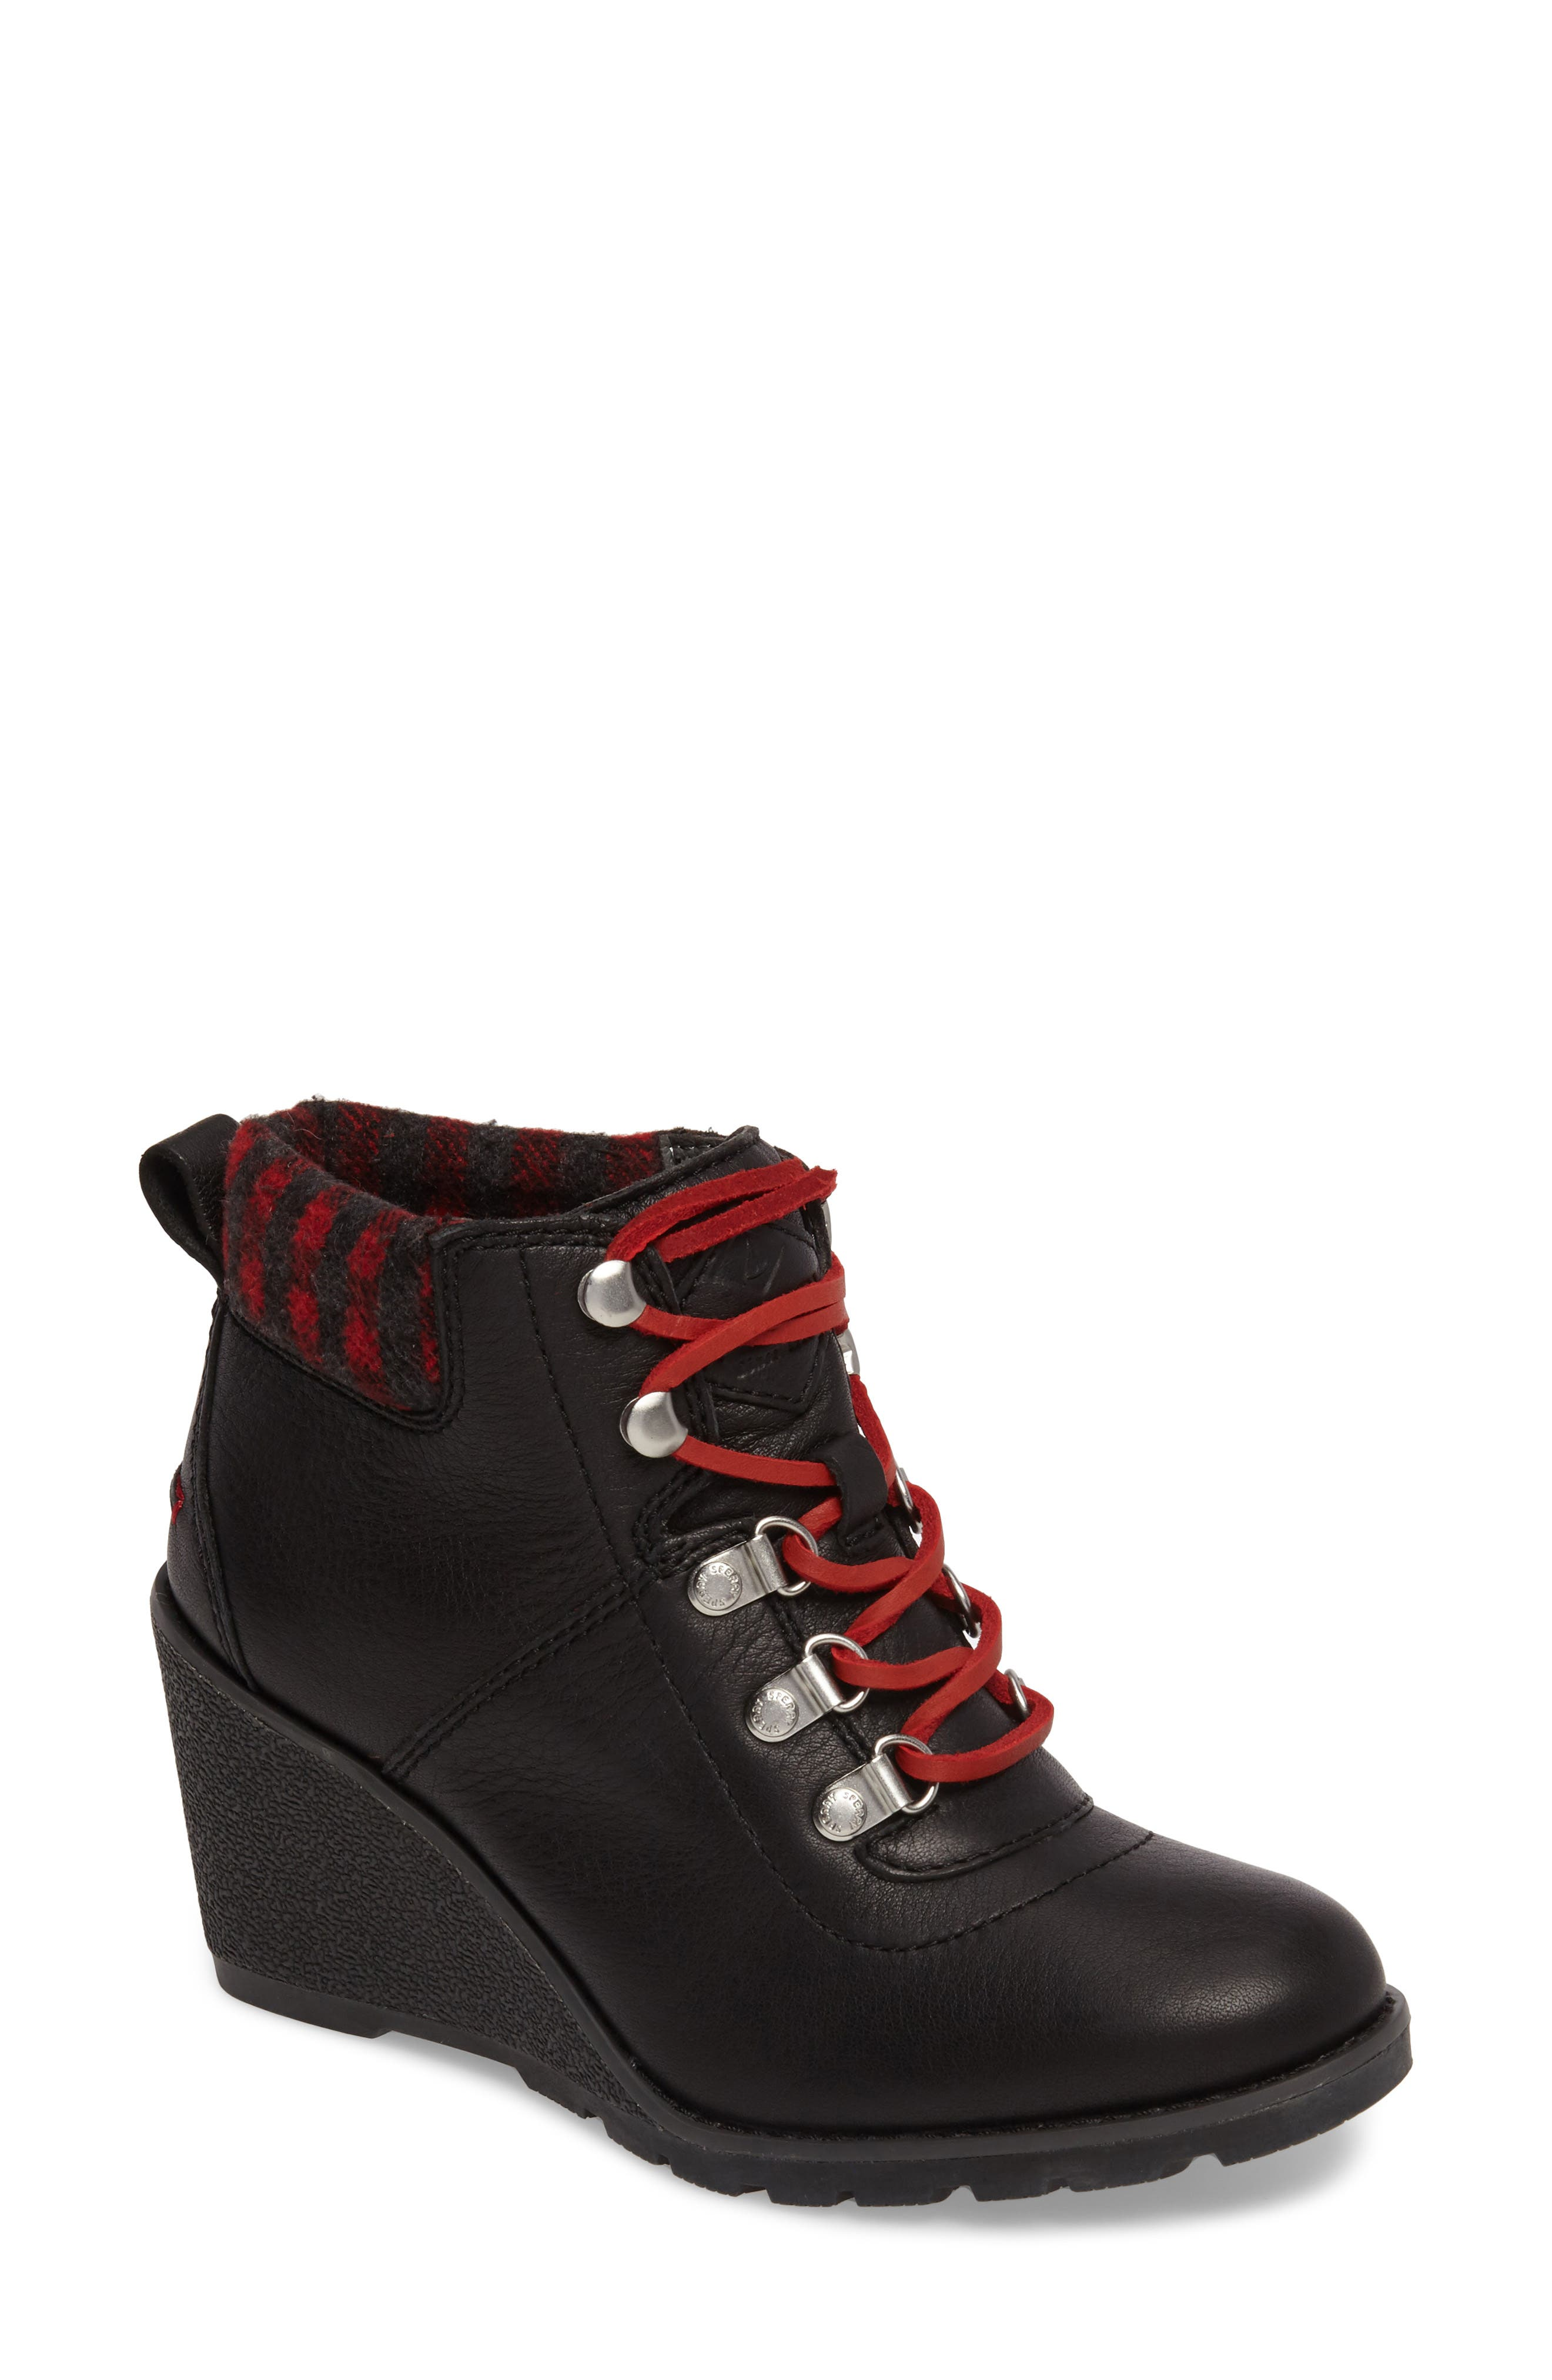 Top-Sider<sup>®</sup> Celeste Bliss Wedge Boot,                             Main thumbnail 1, color,                             Black Leather